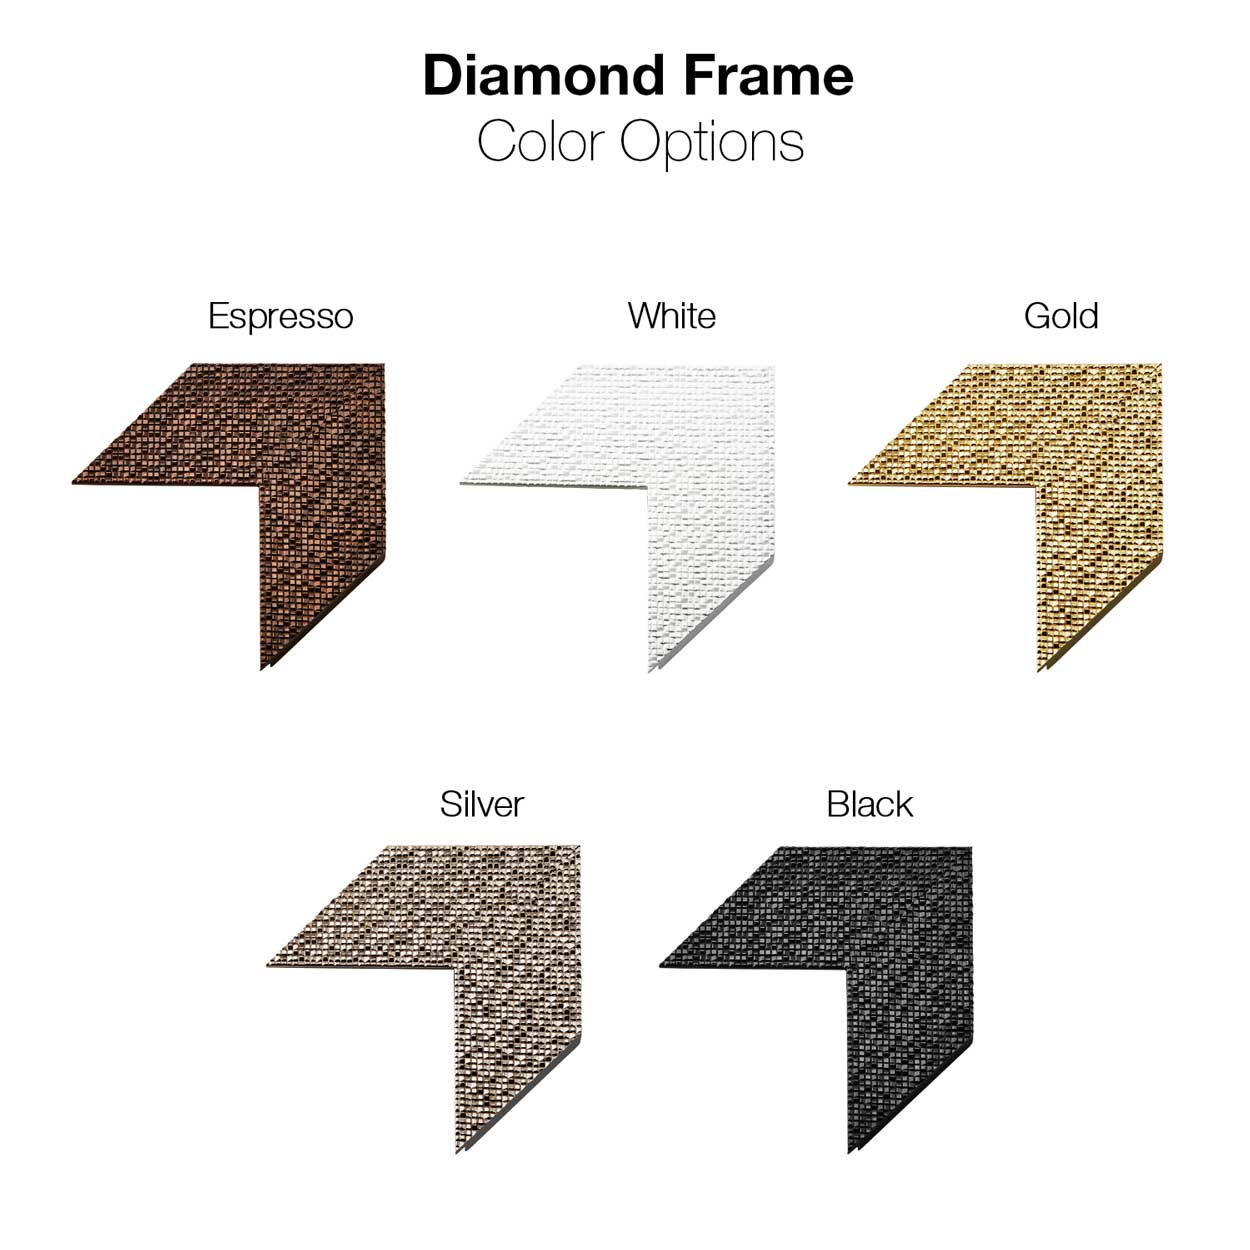 Diamond Framed Mirror Styling Station On Base alternative product image 4